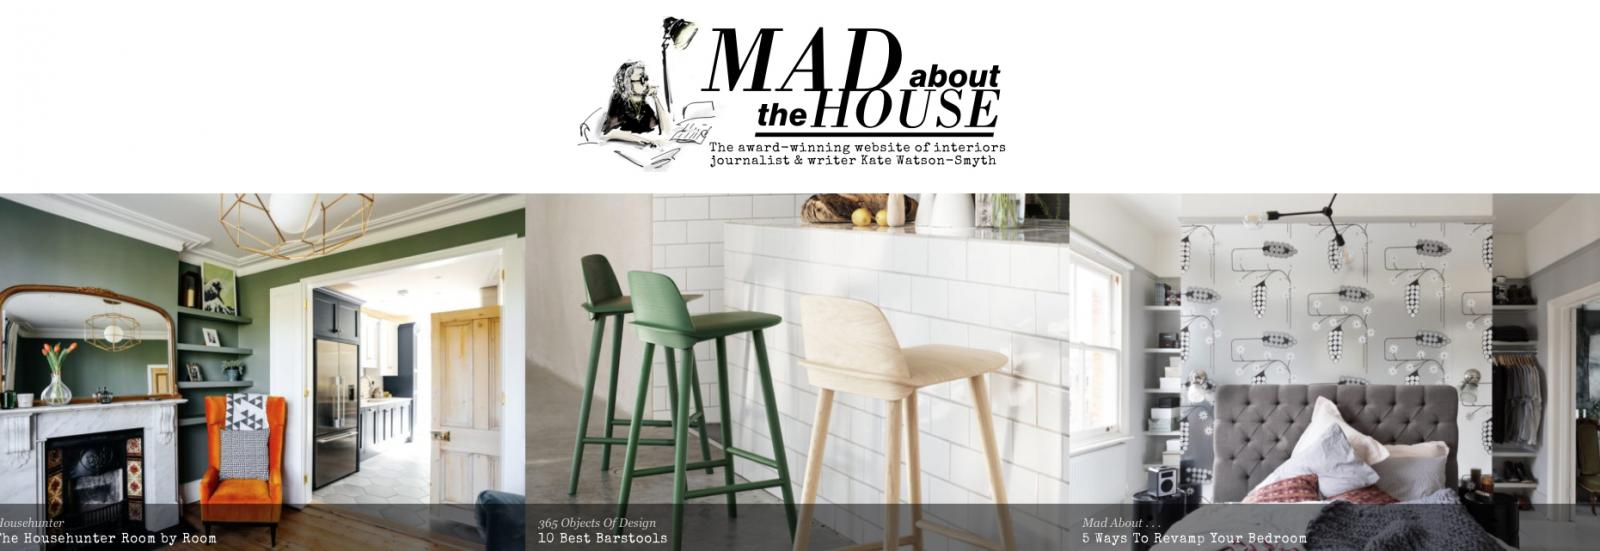 Mad about the house blog